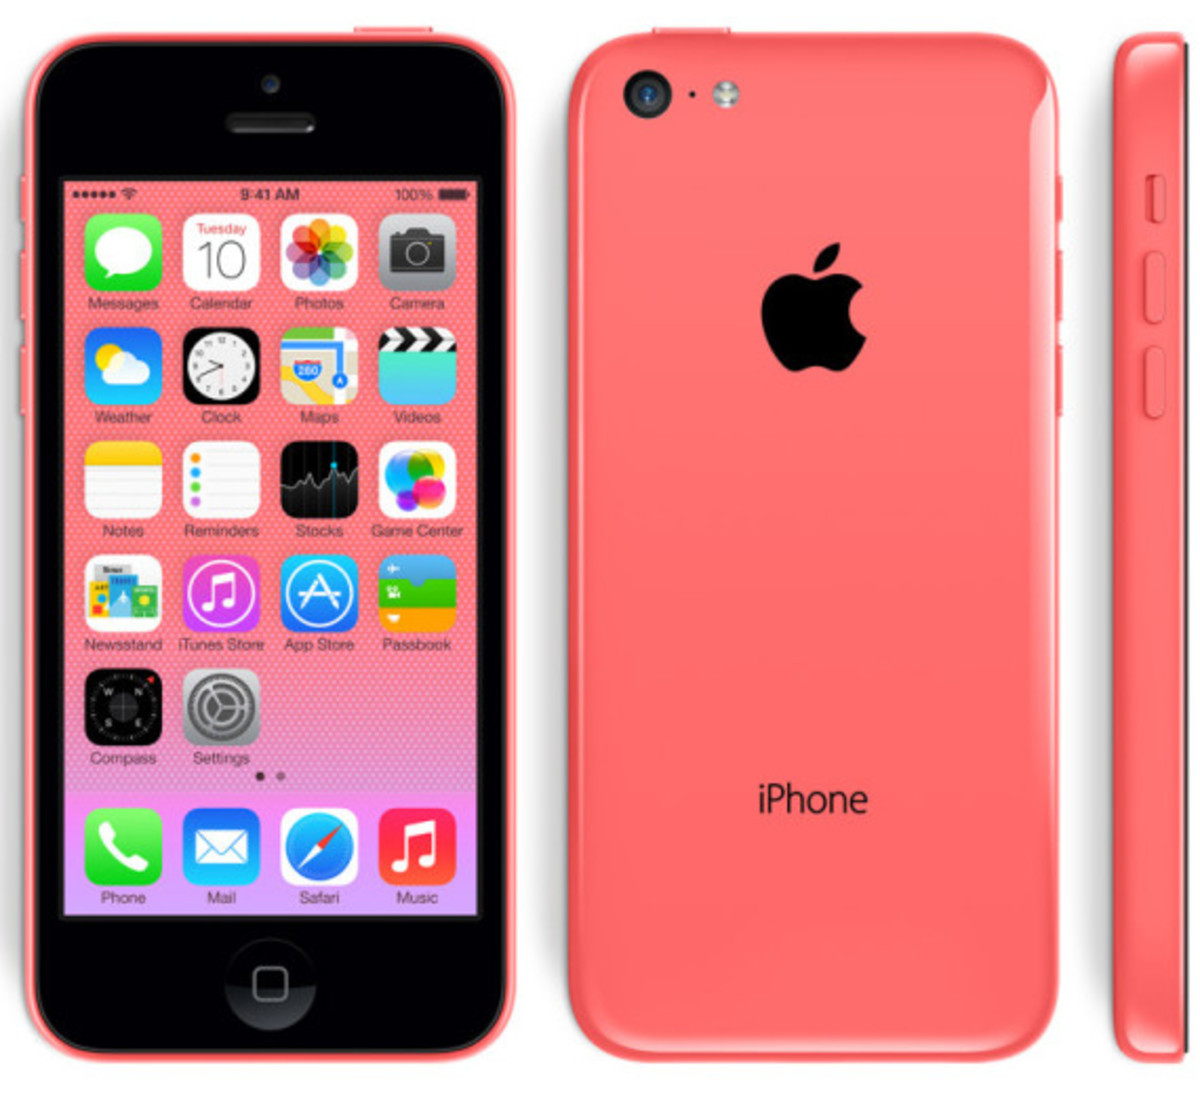 Apple iPhone 5C - Officially Unveiled - 10